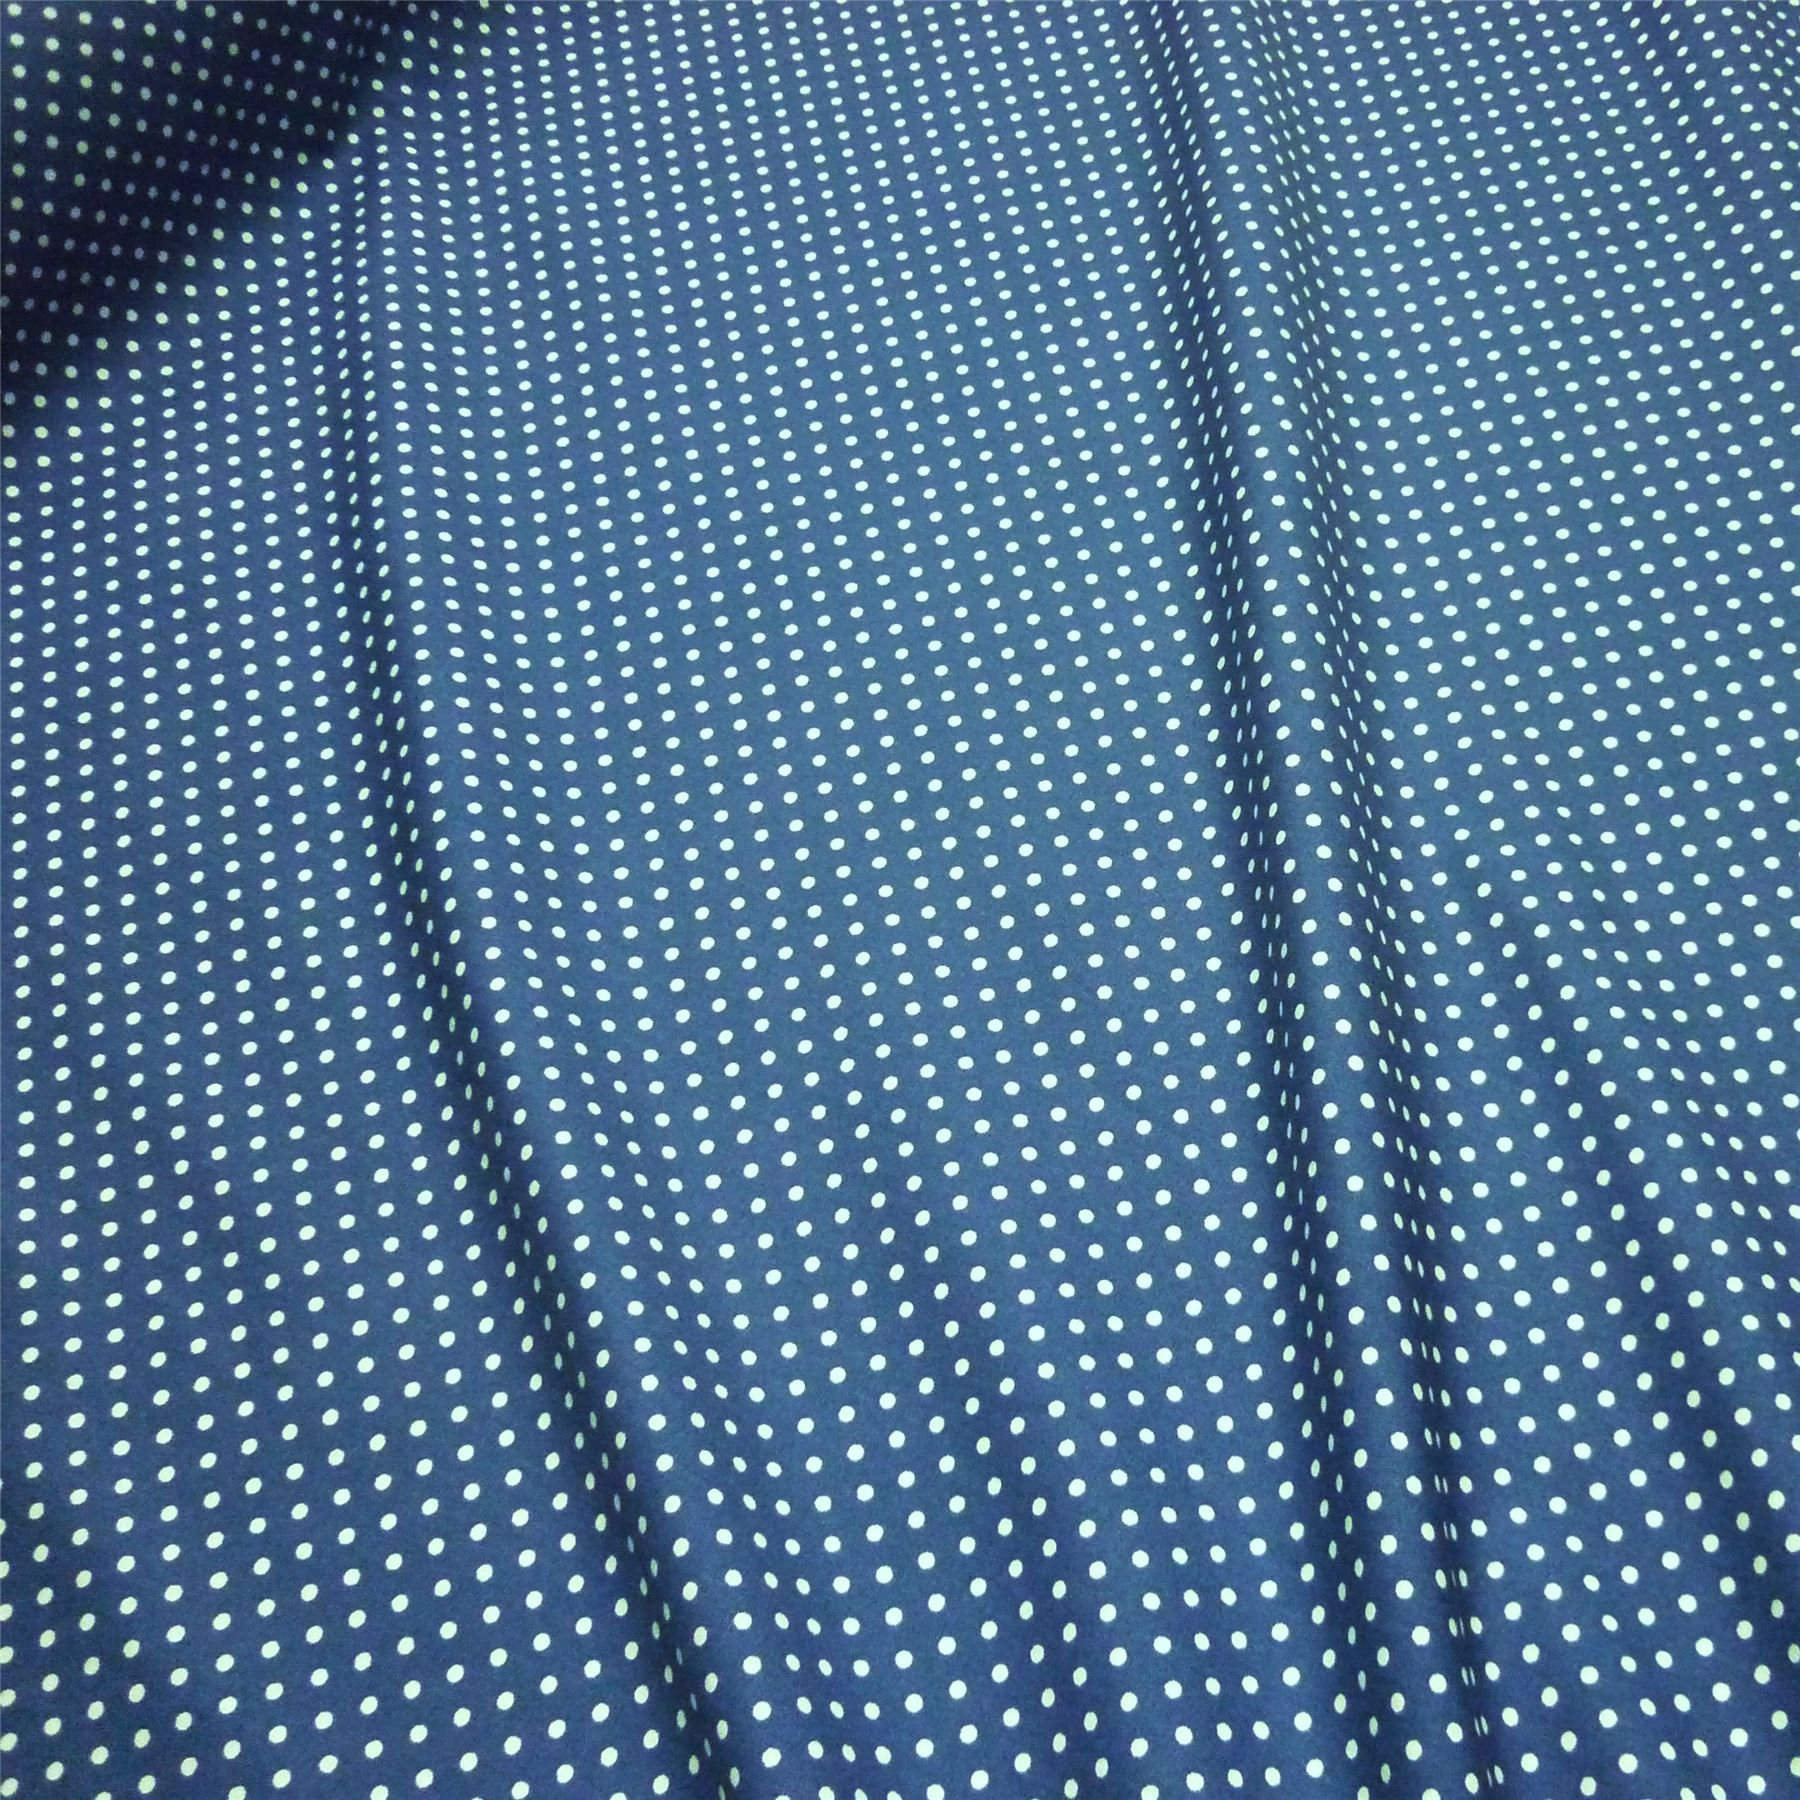 3mm Polka Dots ~ Royal Blue 100/% cotton fabric